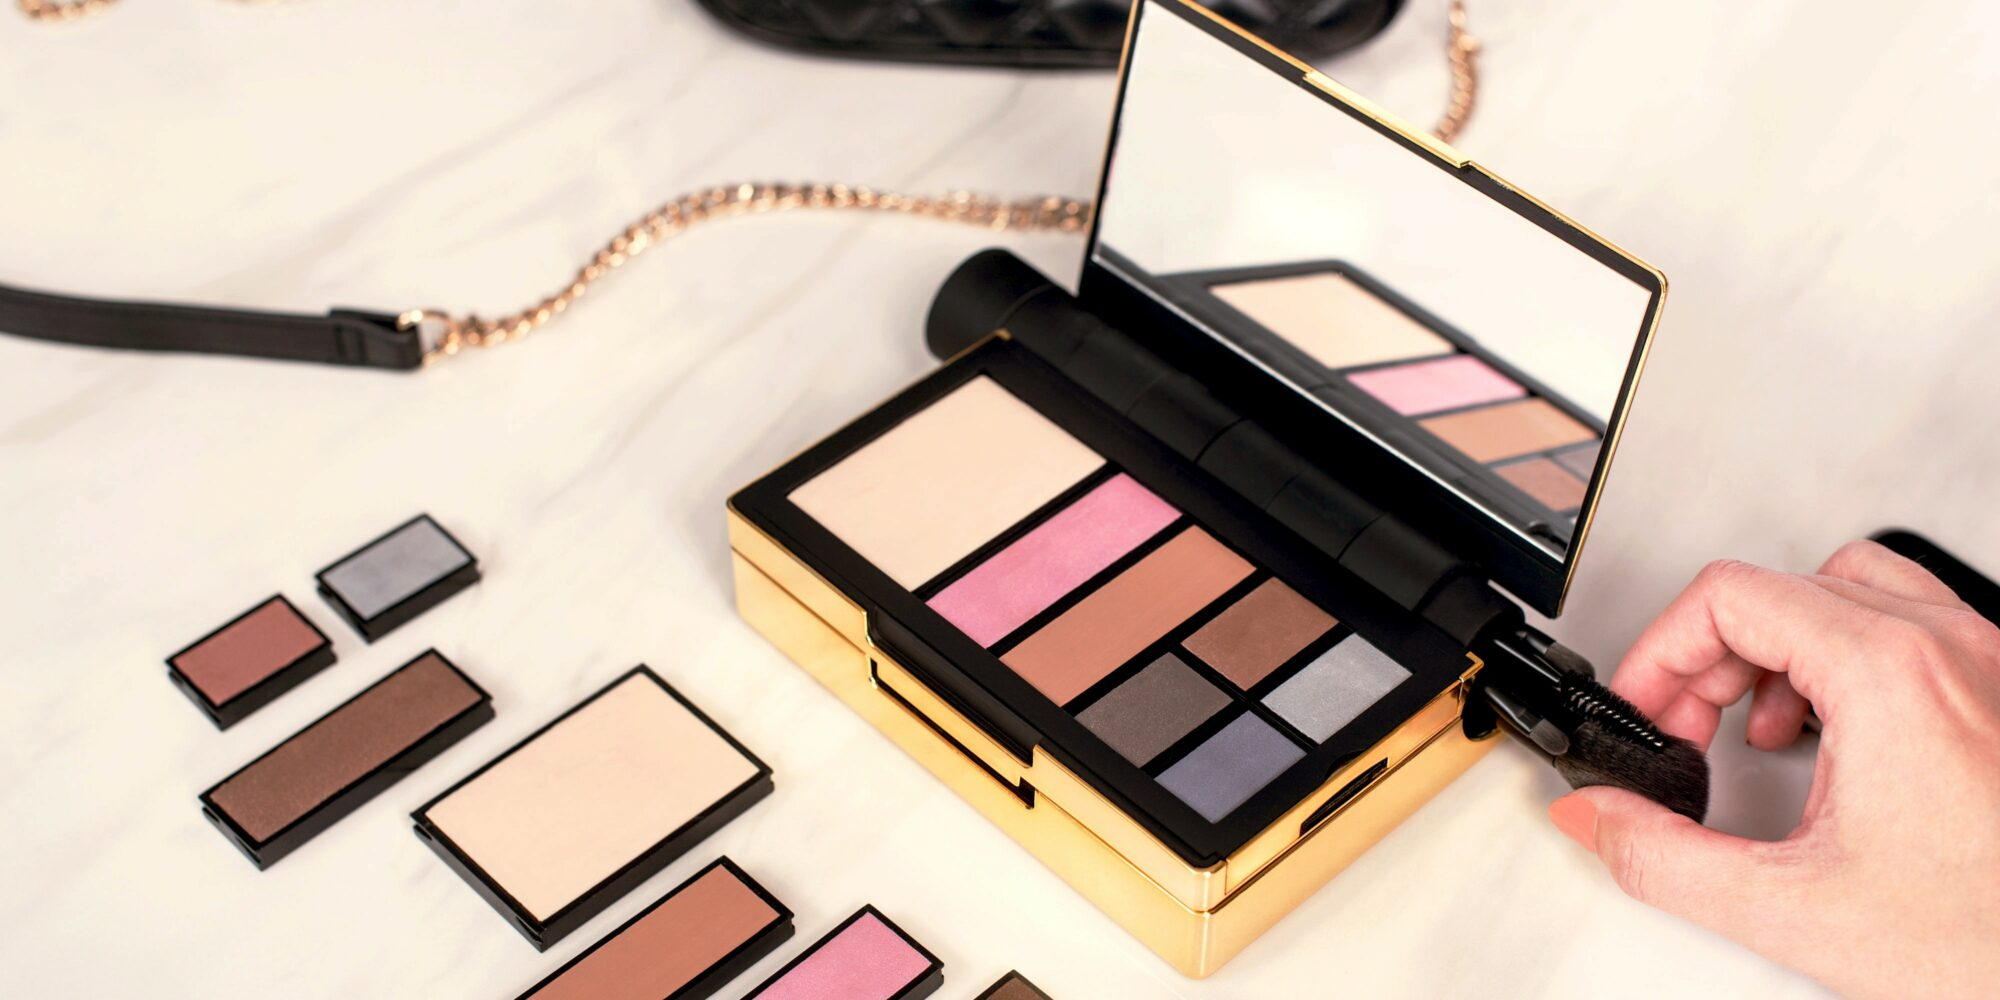 Customizable Palette Concept Renzoe Box Makes Organizing Makeup Easy And Earth-Friendly